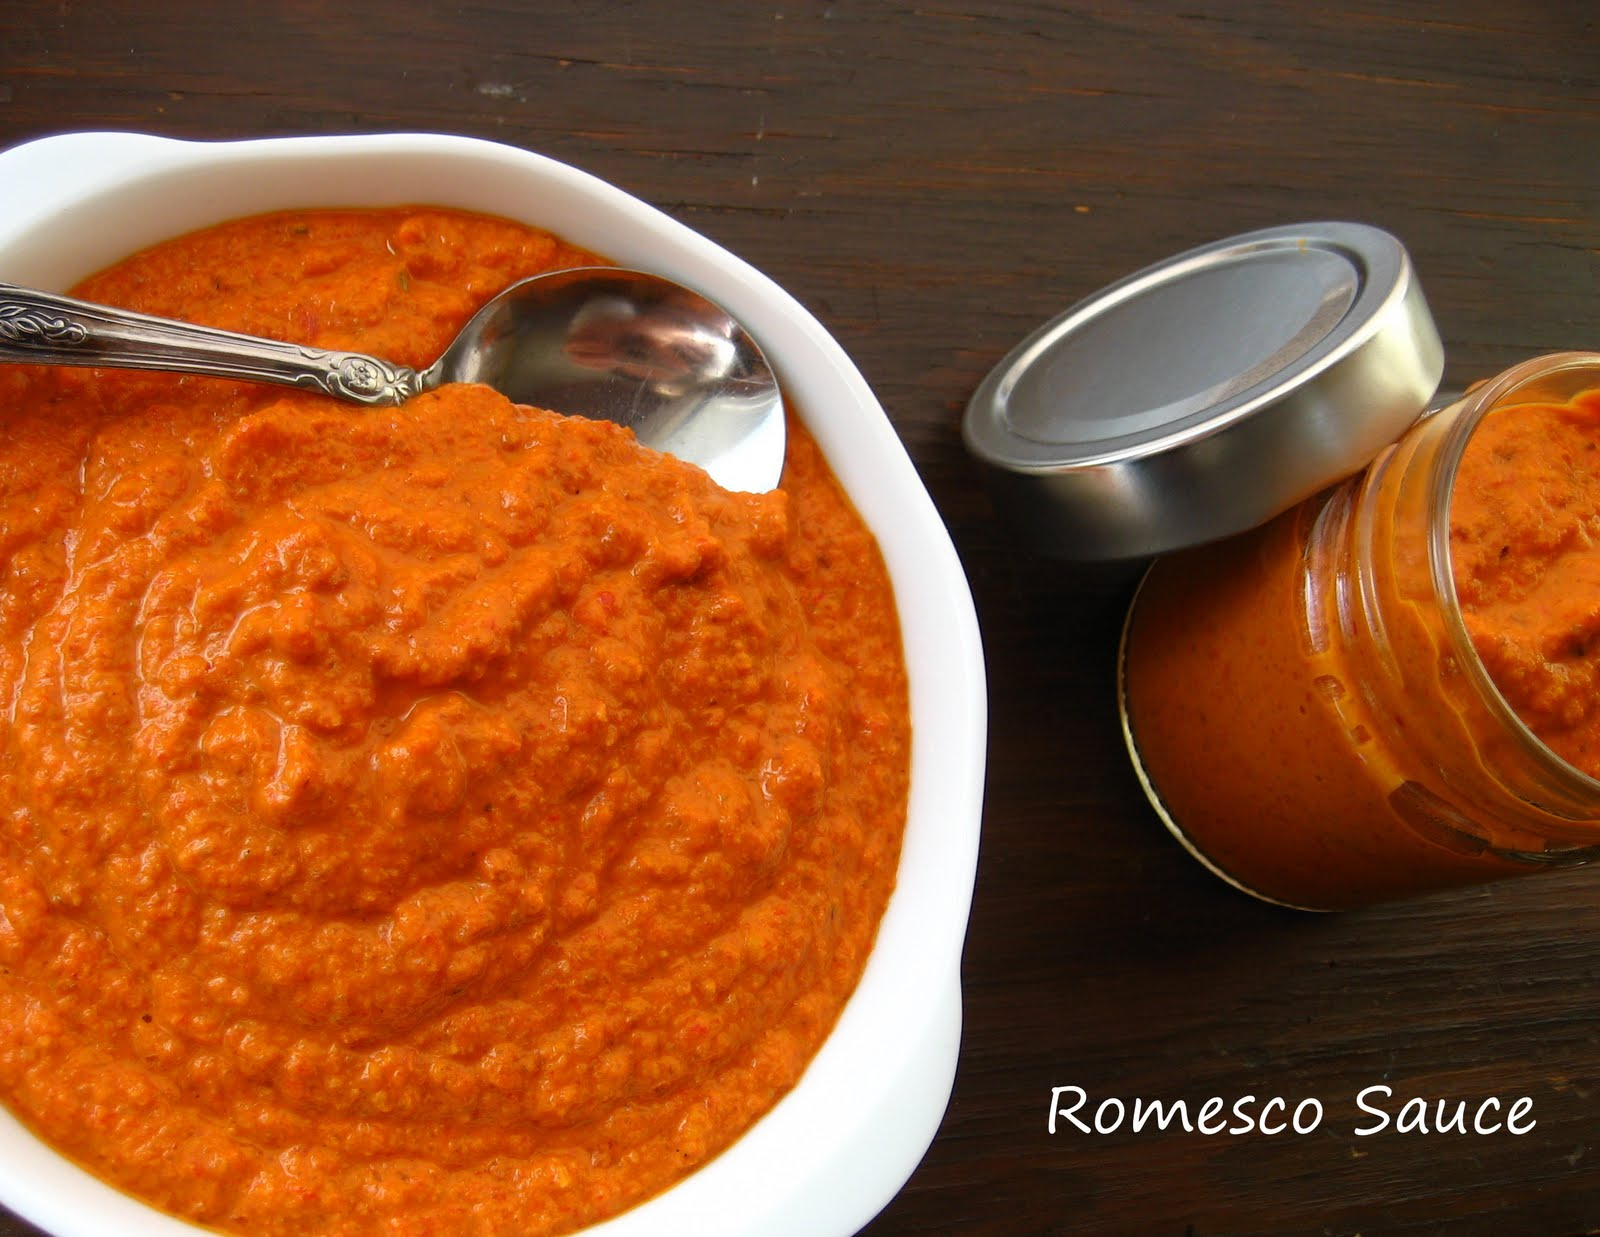 Spanish Romesco Sauce Recipe — Dishmaps